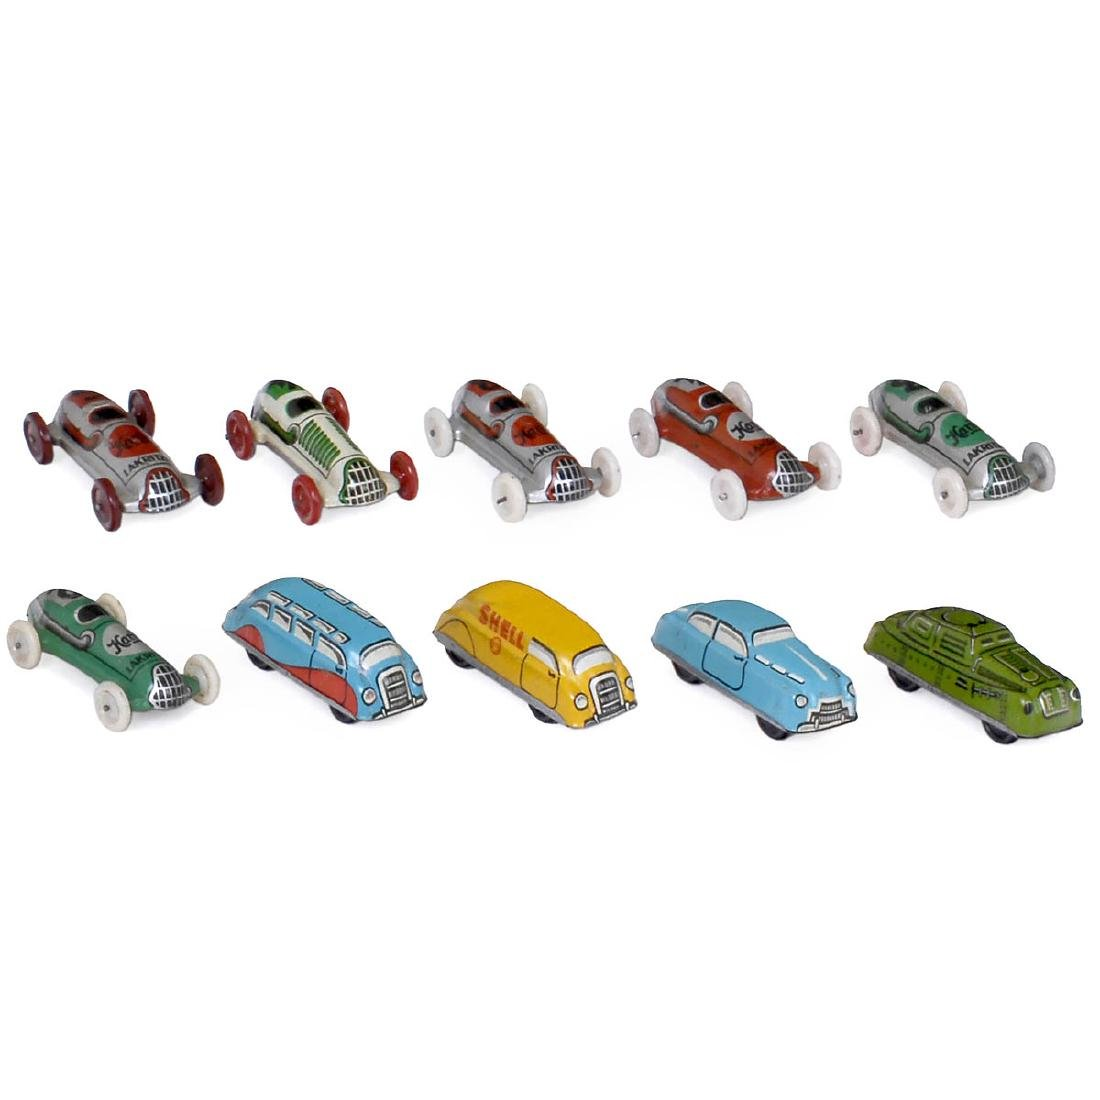 10 Tin Toy Promotional Cars, 1950s